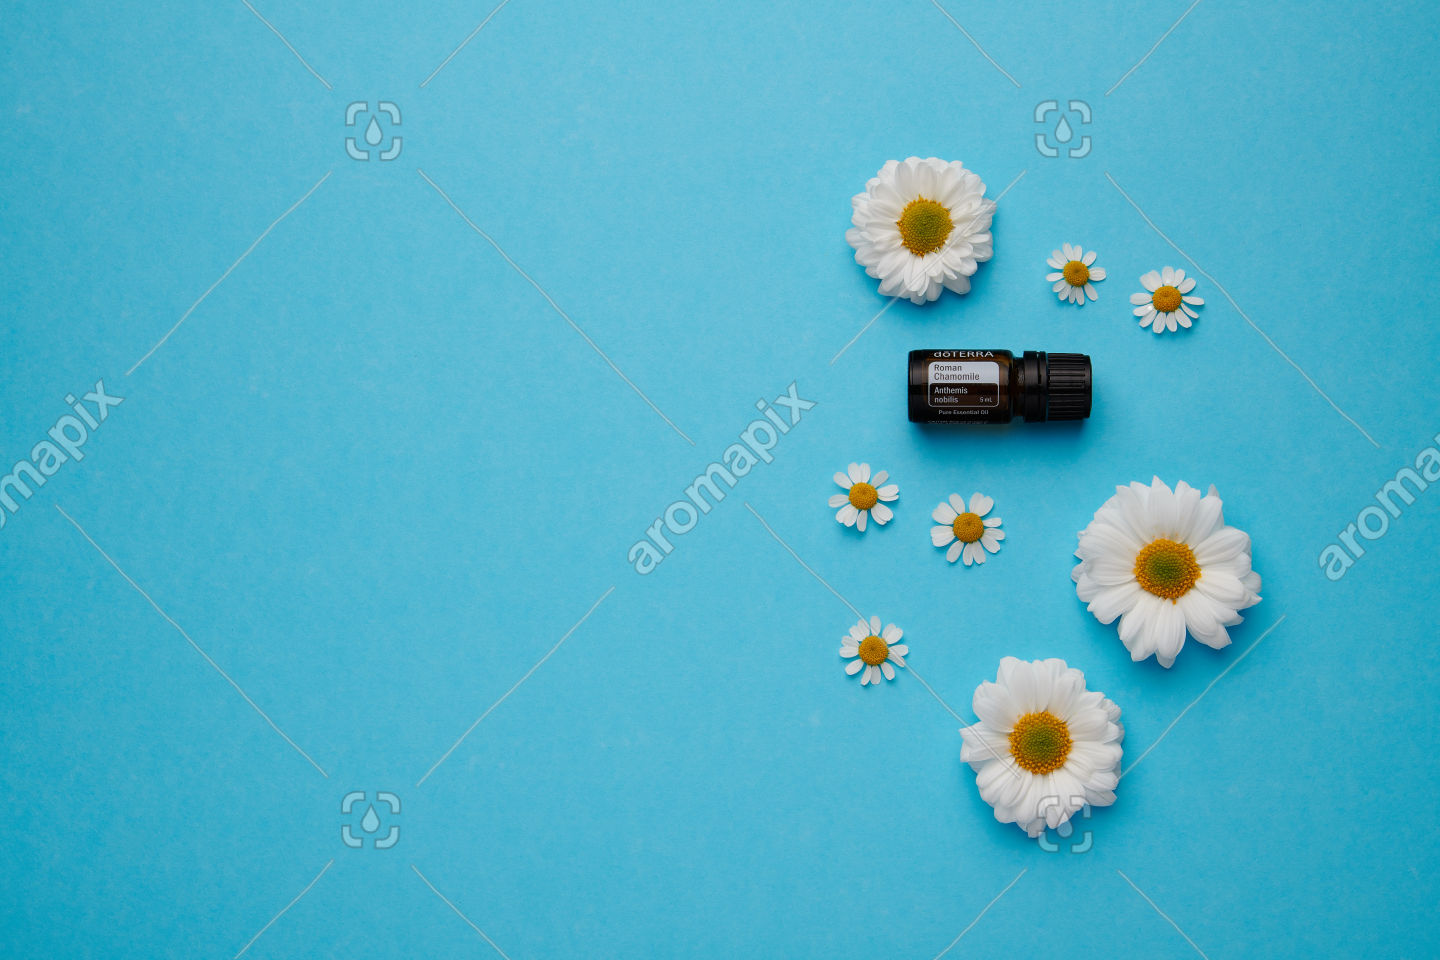 doTERRA Roman Chamomile with flowers on blue